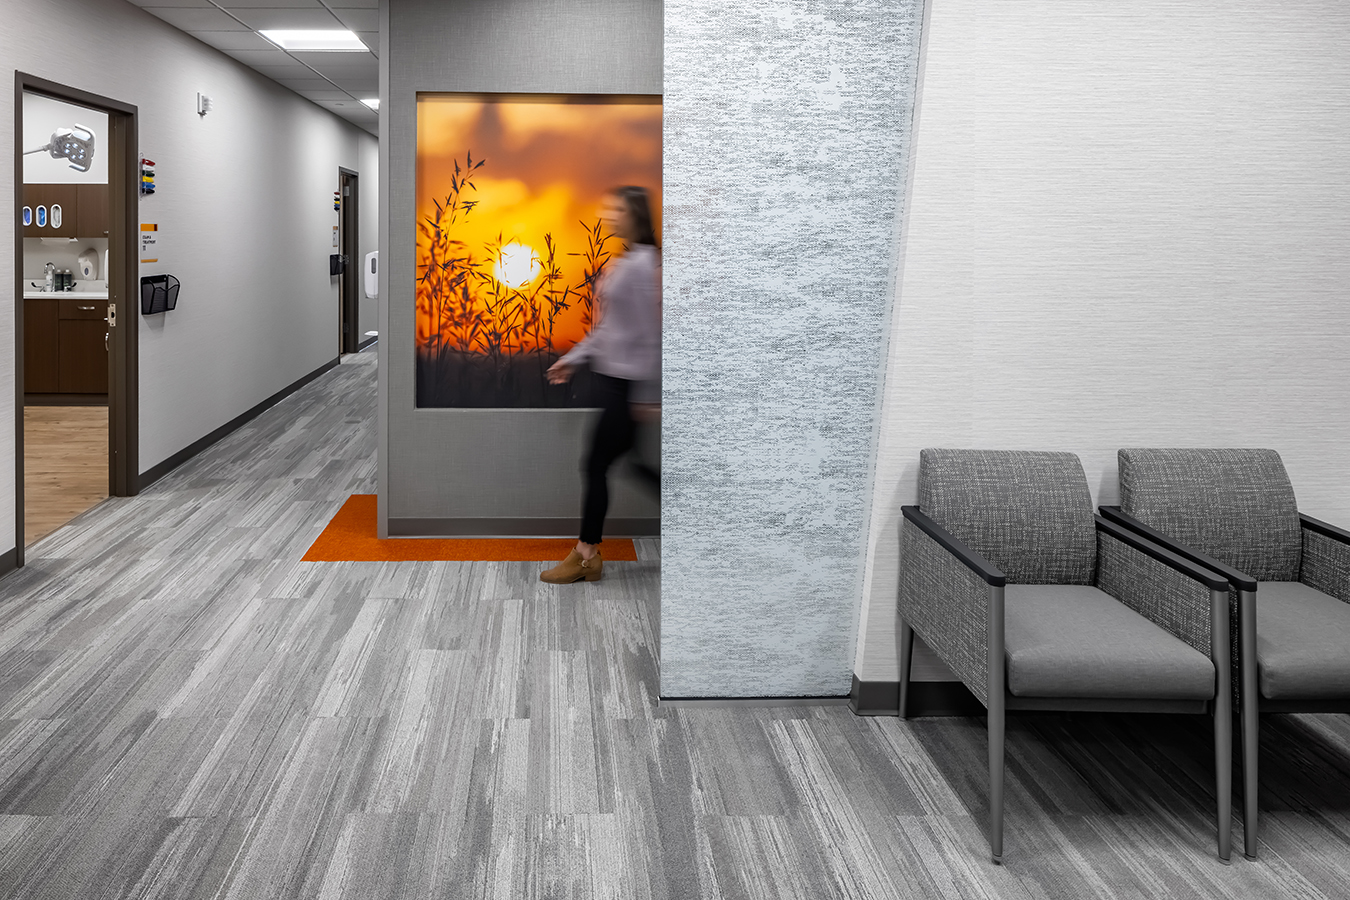 Fairview health services river falls WI Wisconsin BDH Koroseal large scale wallcovering graphic mural orange grass grasses sunset sunrise landscape hall hallway corridor